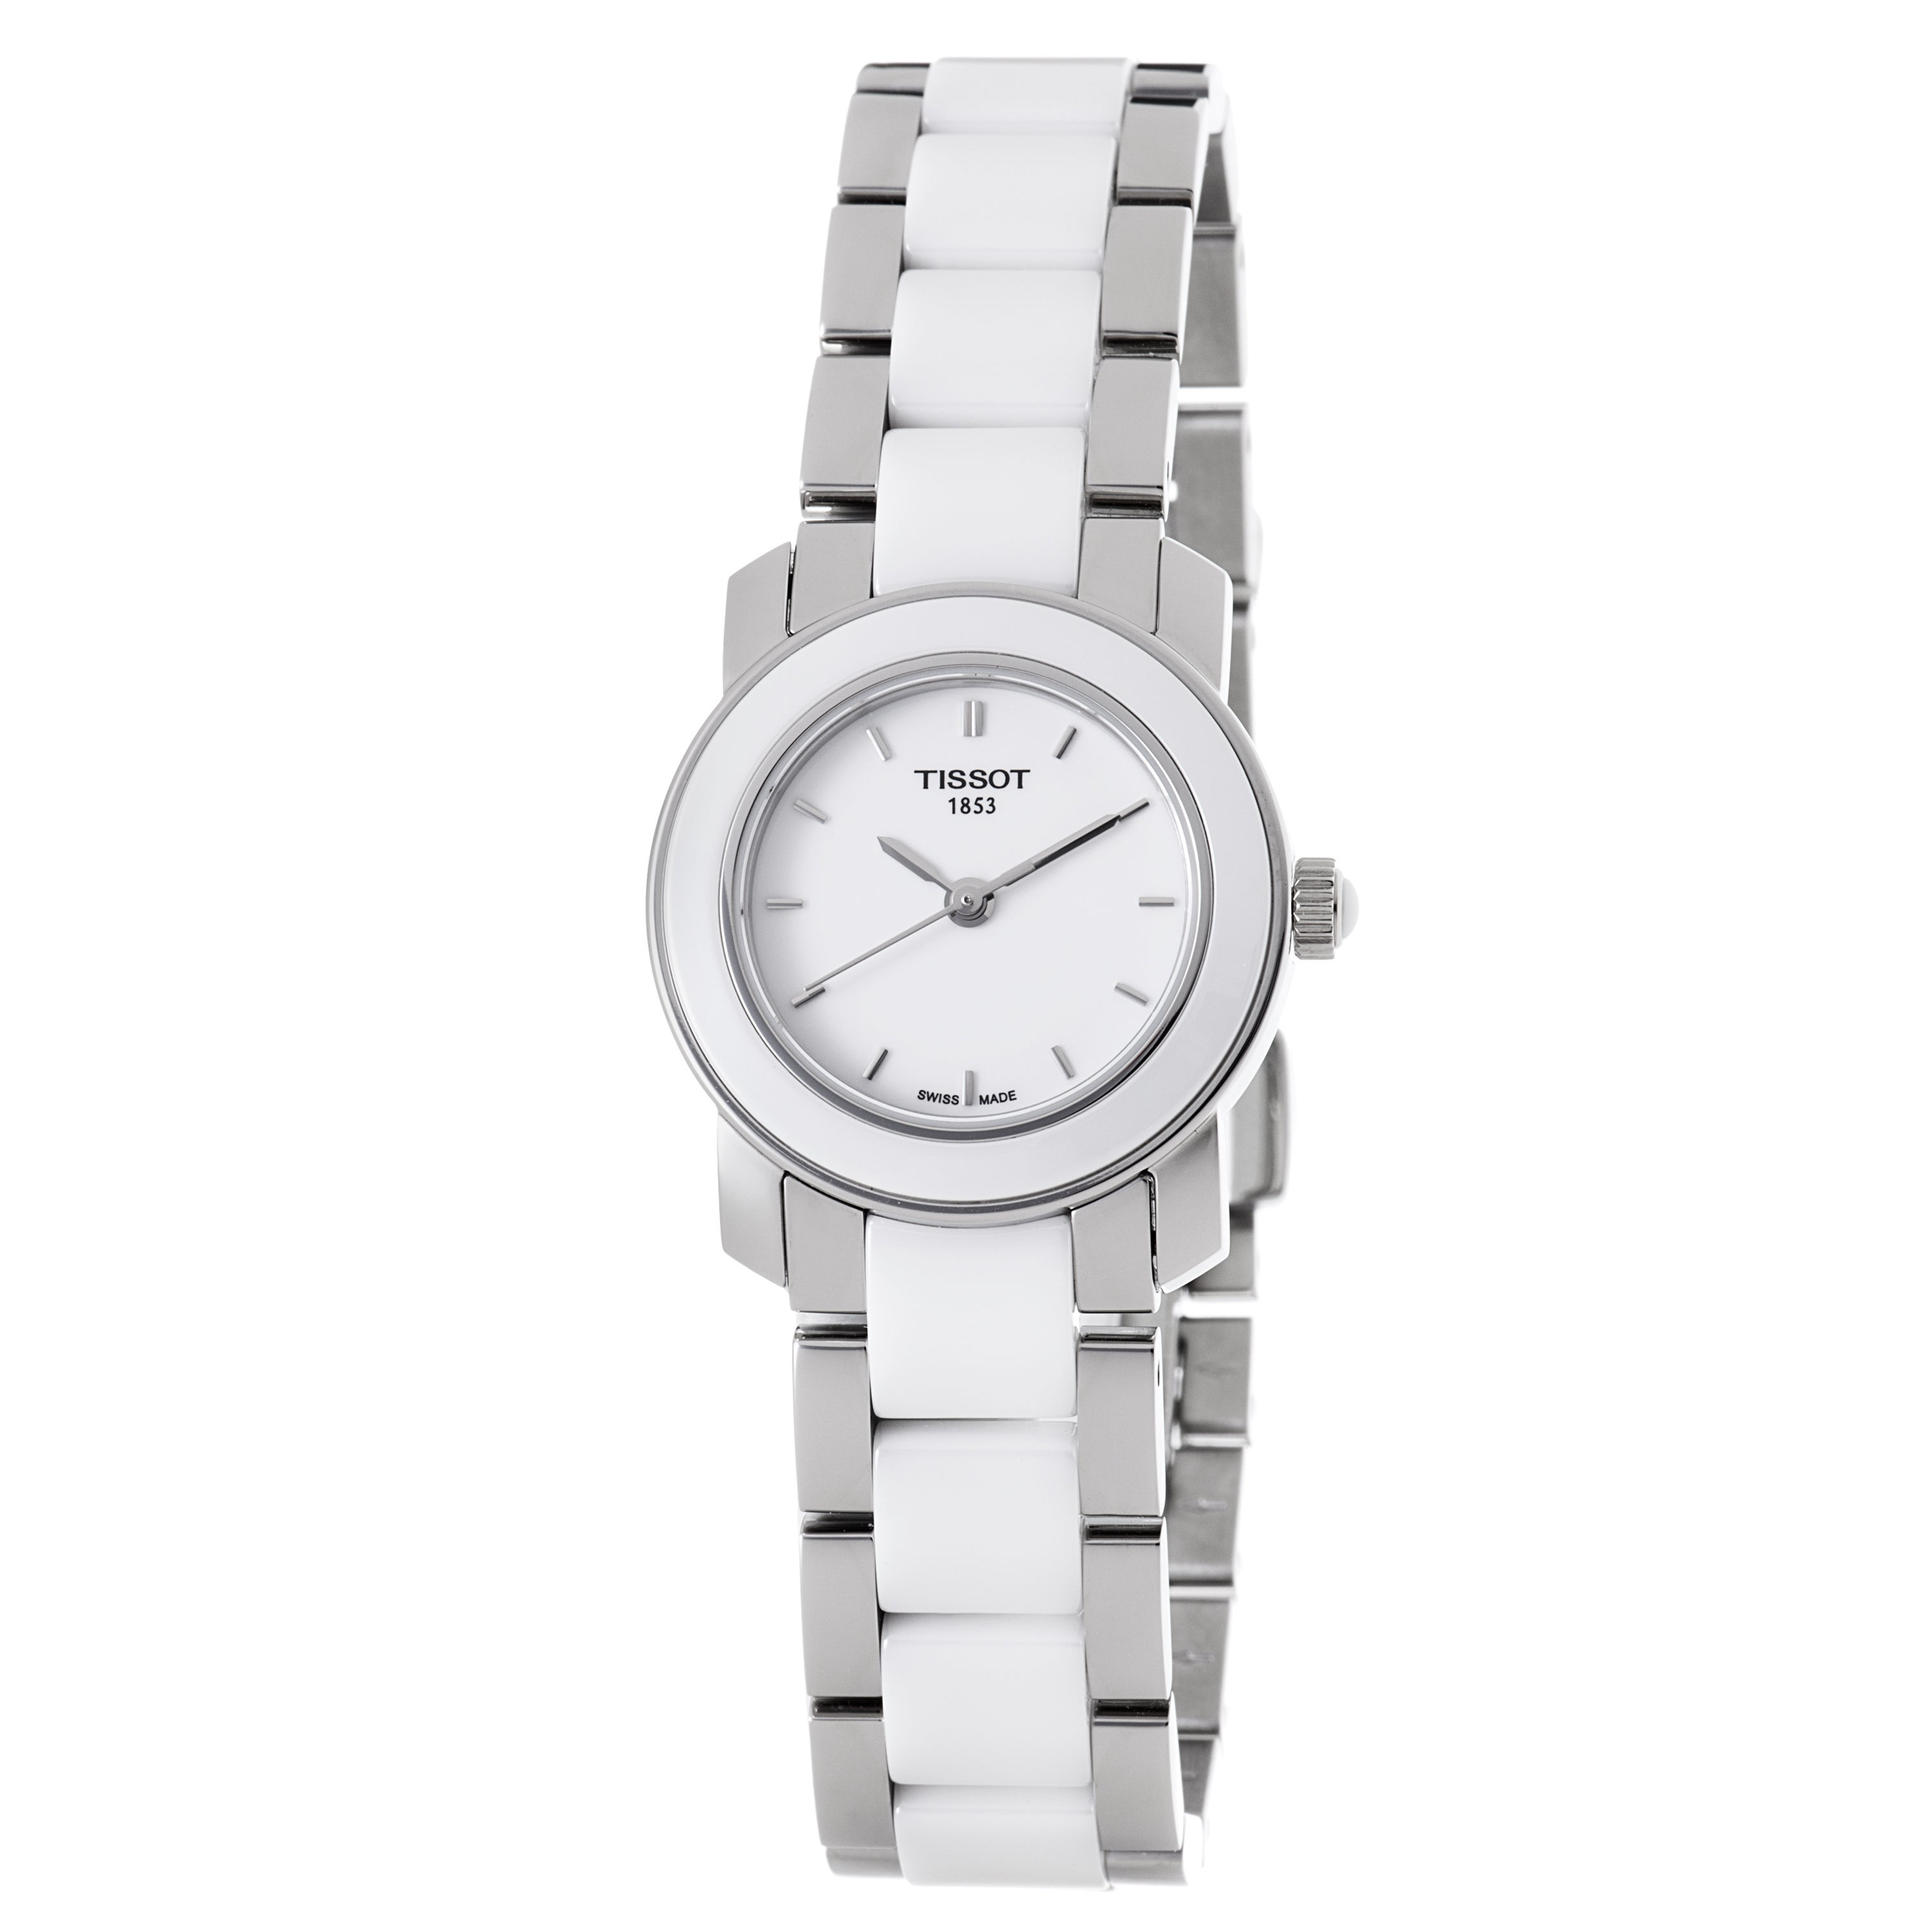 Shop Tissot Women's 'Cera' Stainless Steel White Ceramic Quartz Watch - Free Shipping Today - Overstock.com - 6478031